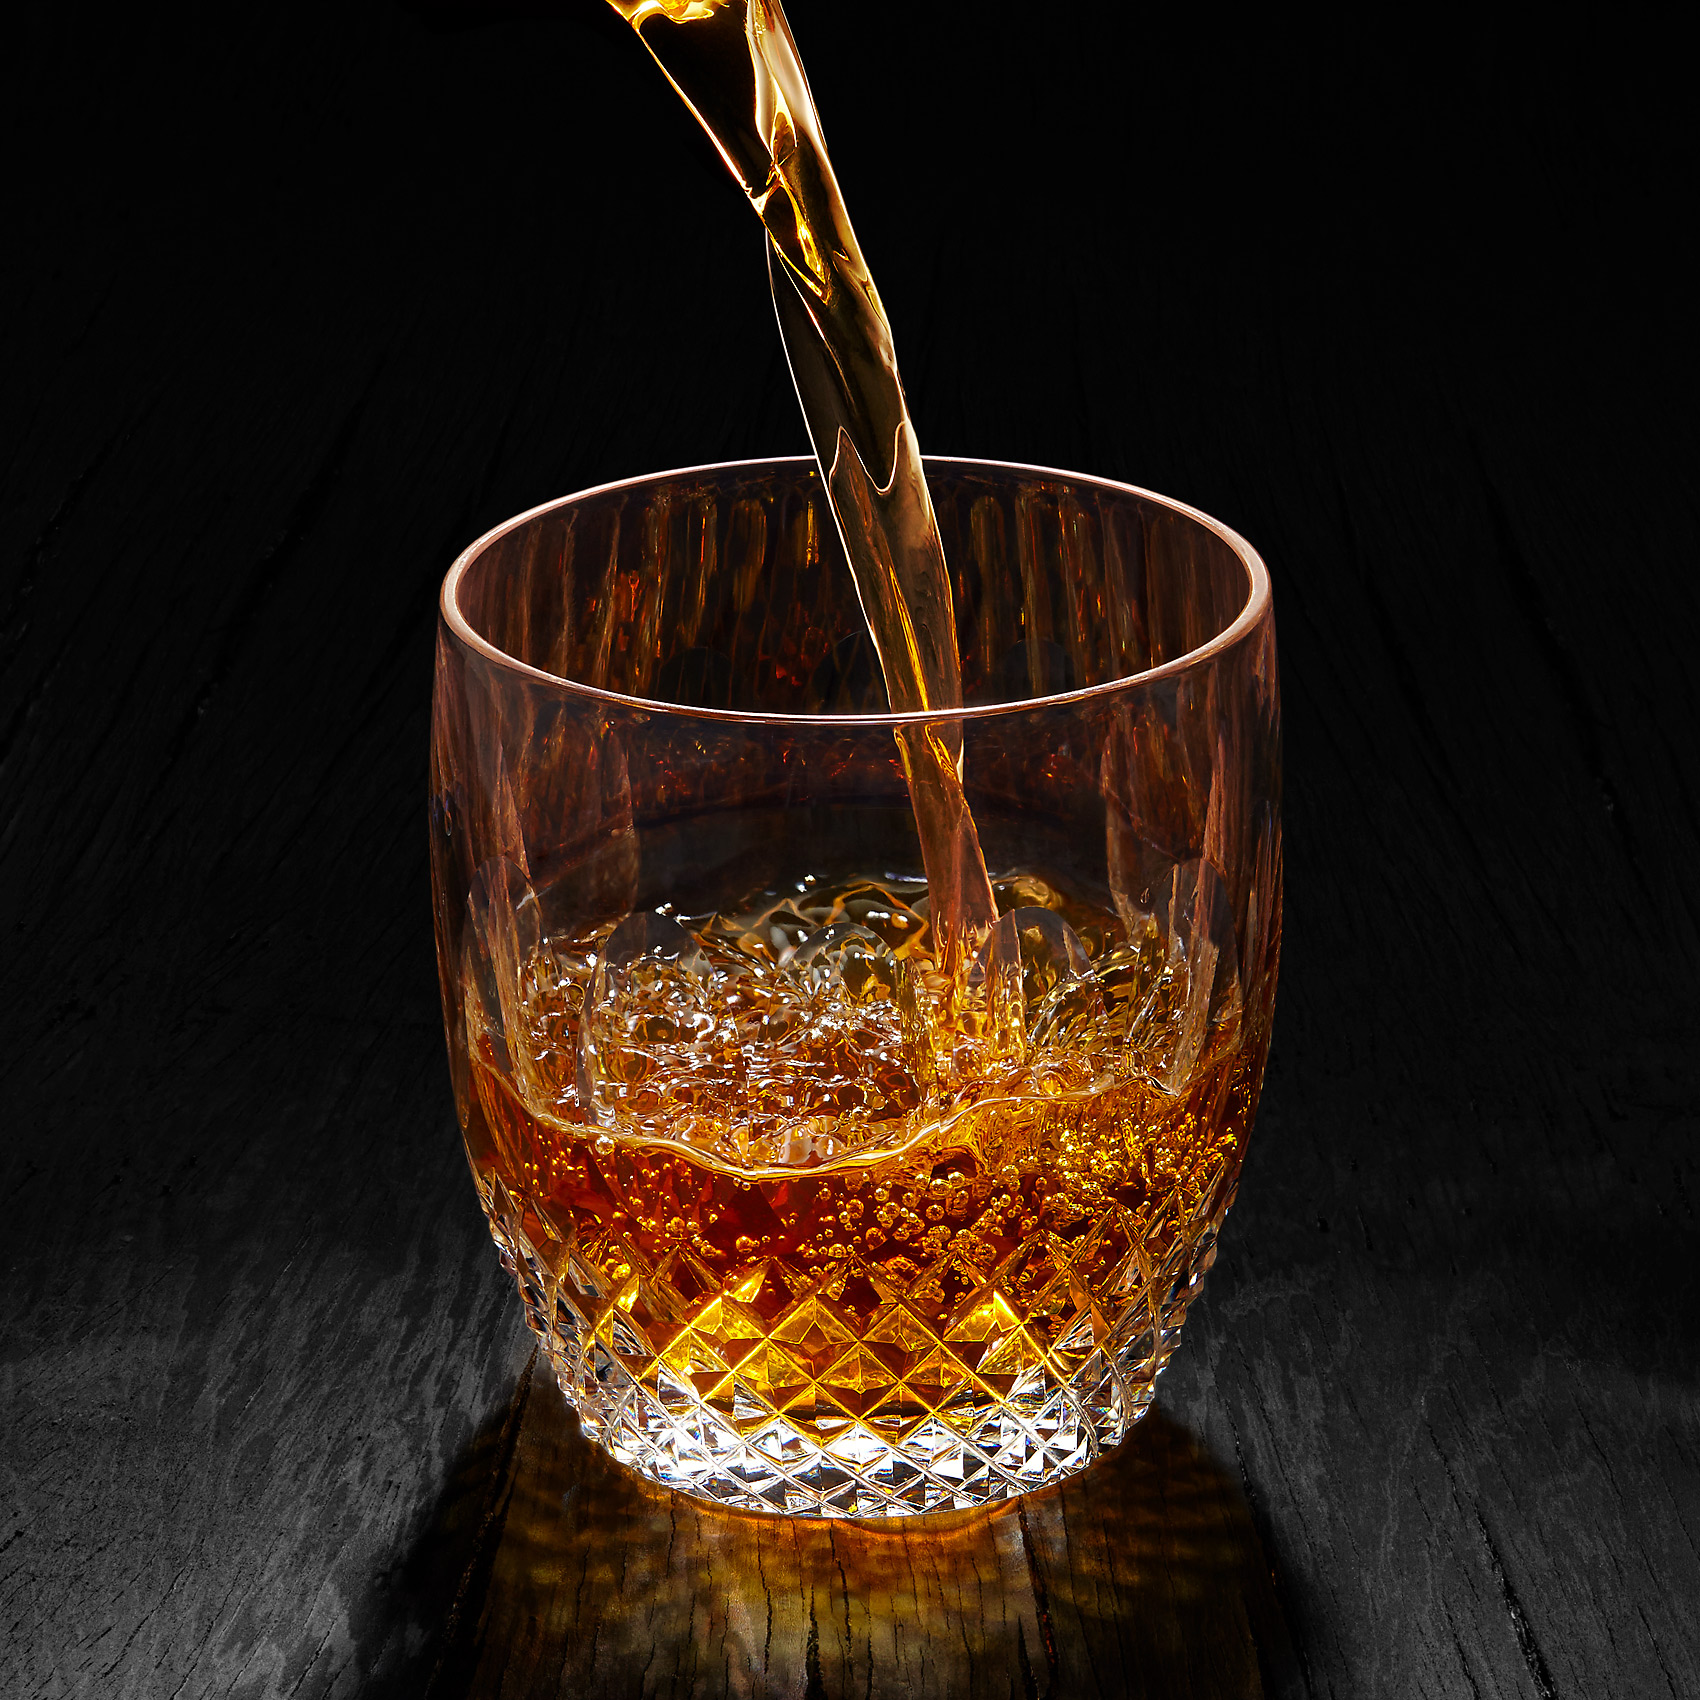 Nick_Rees-Drinks-Whisky-Pour